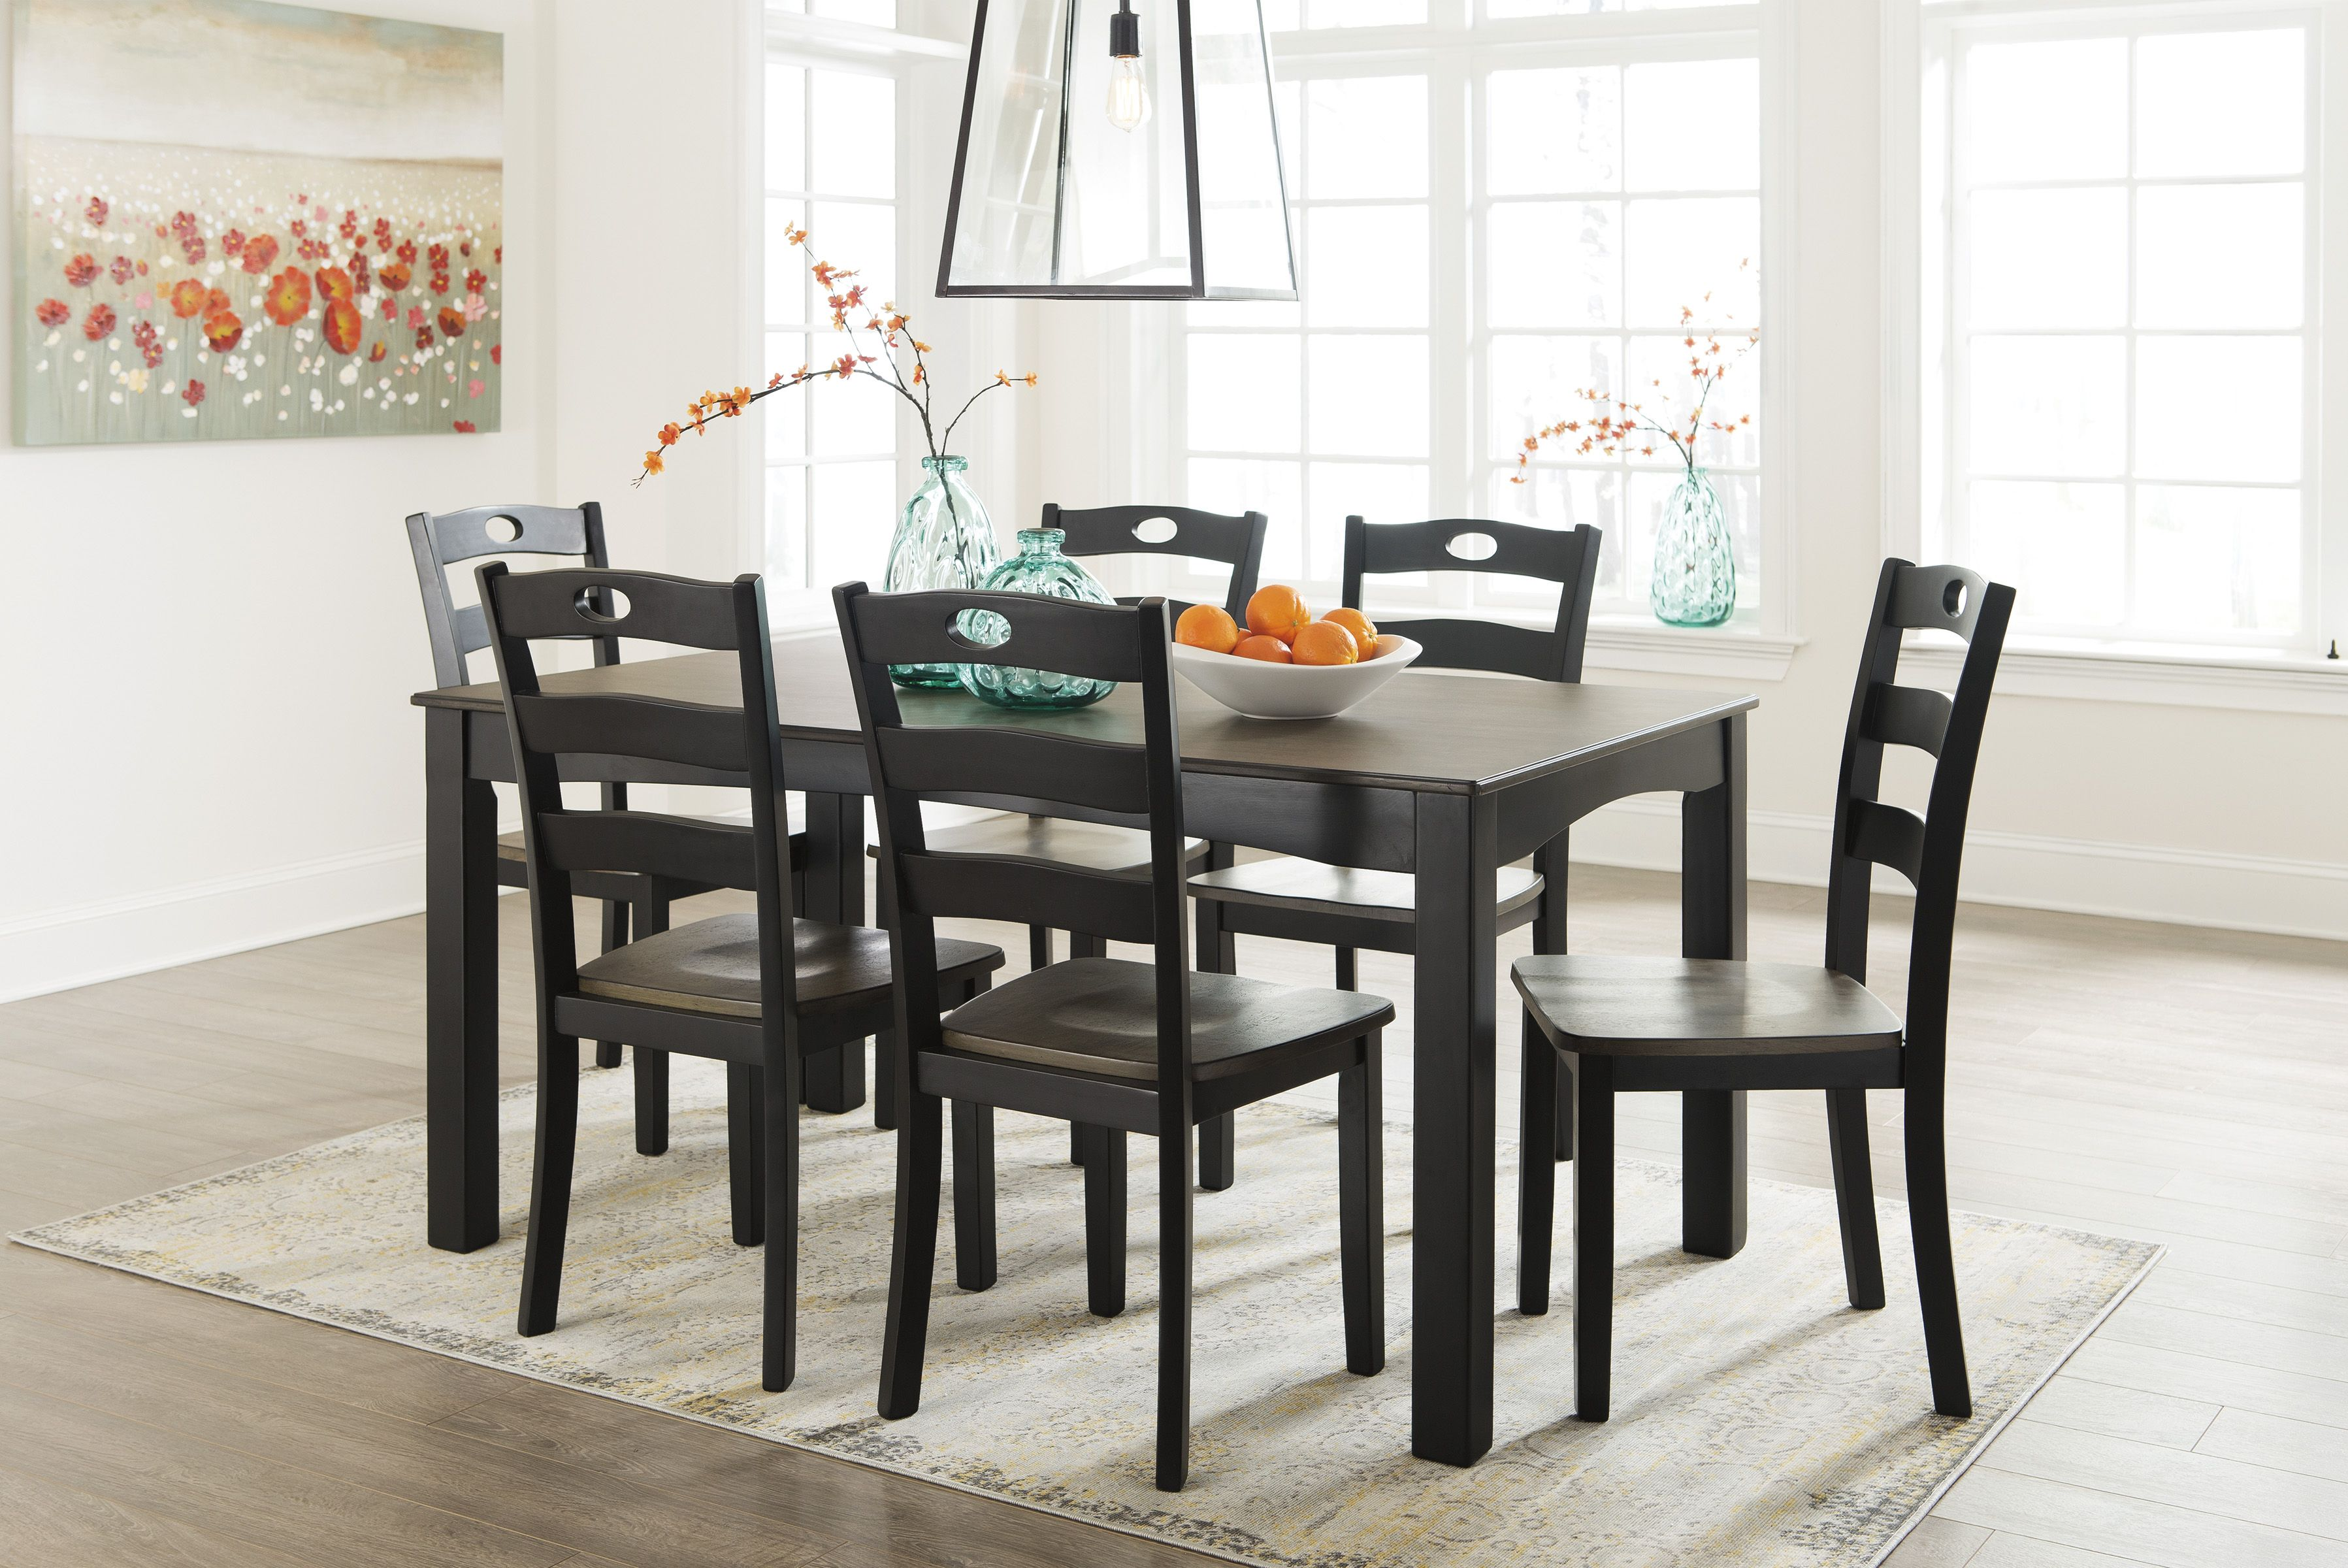 table rouge two phoebe furniture set overstock cottages cottage tone bethannie of home today maison style garden dining shipping america free product